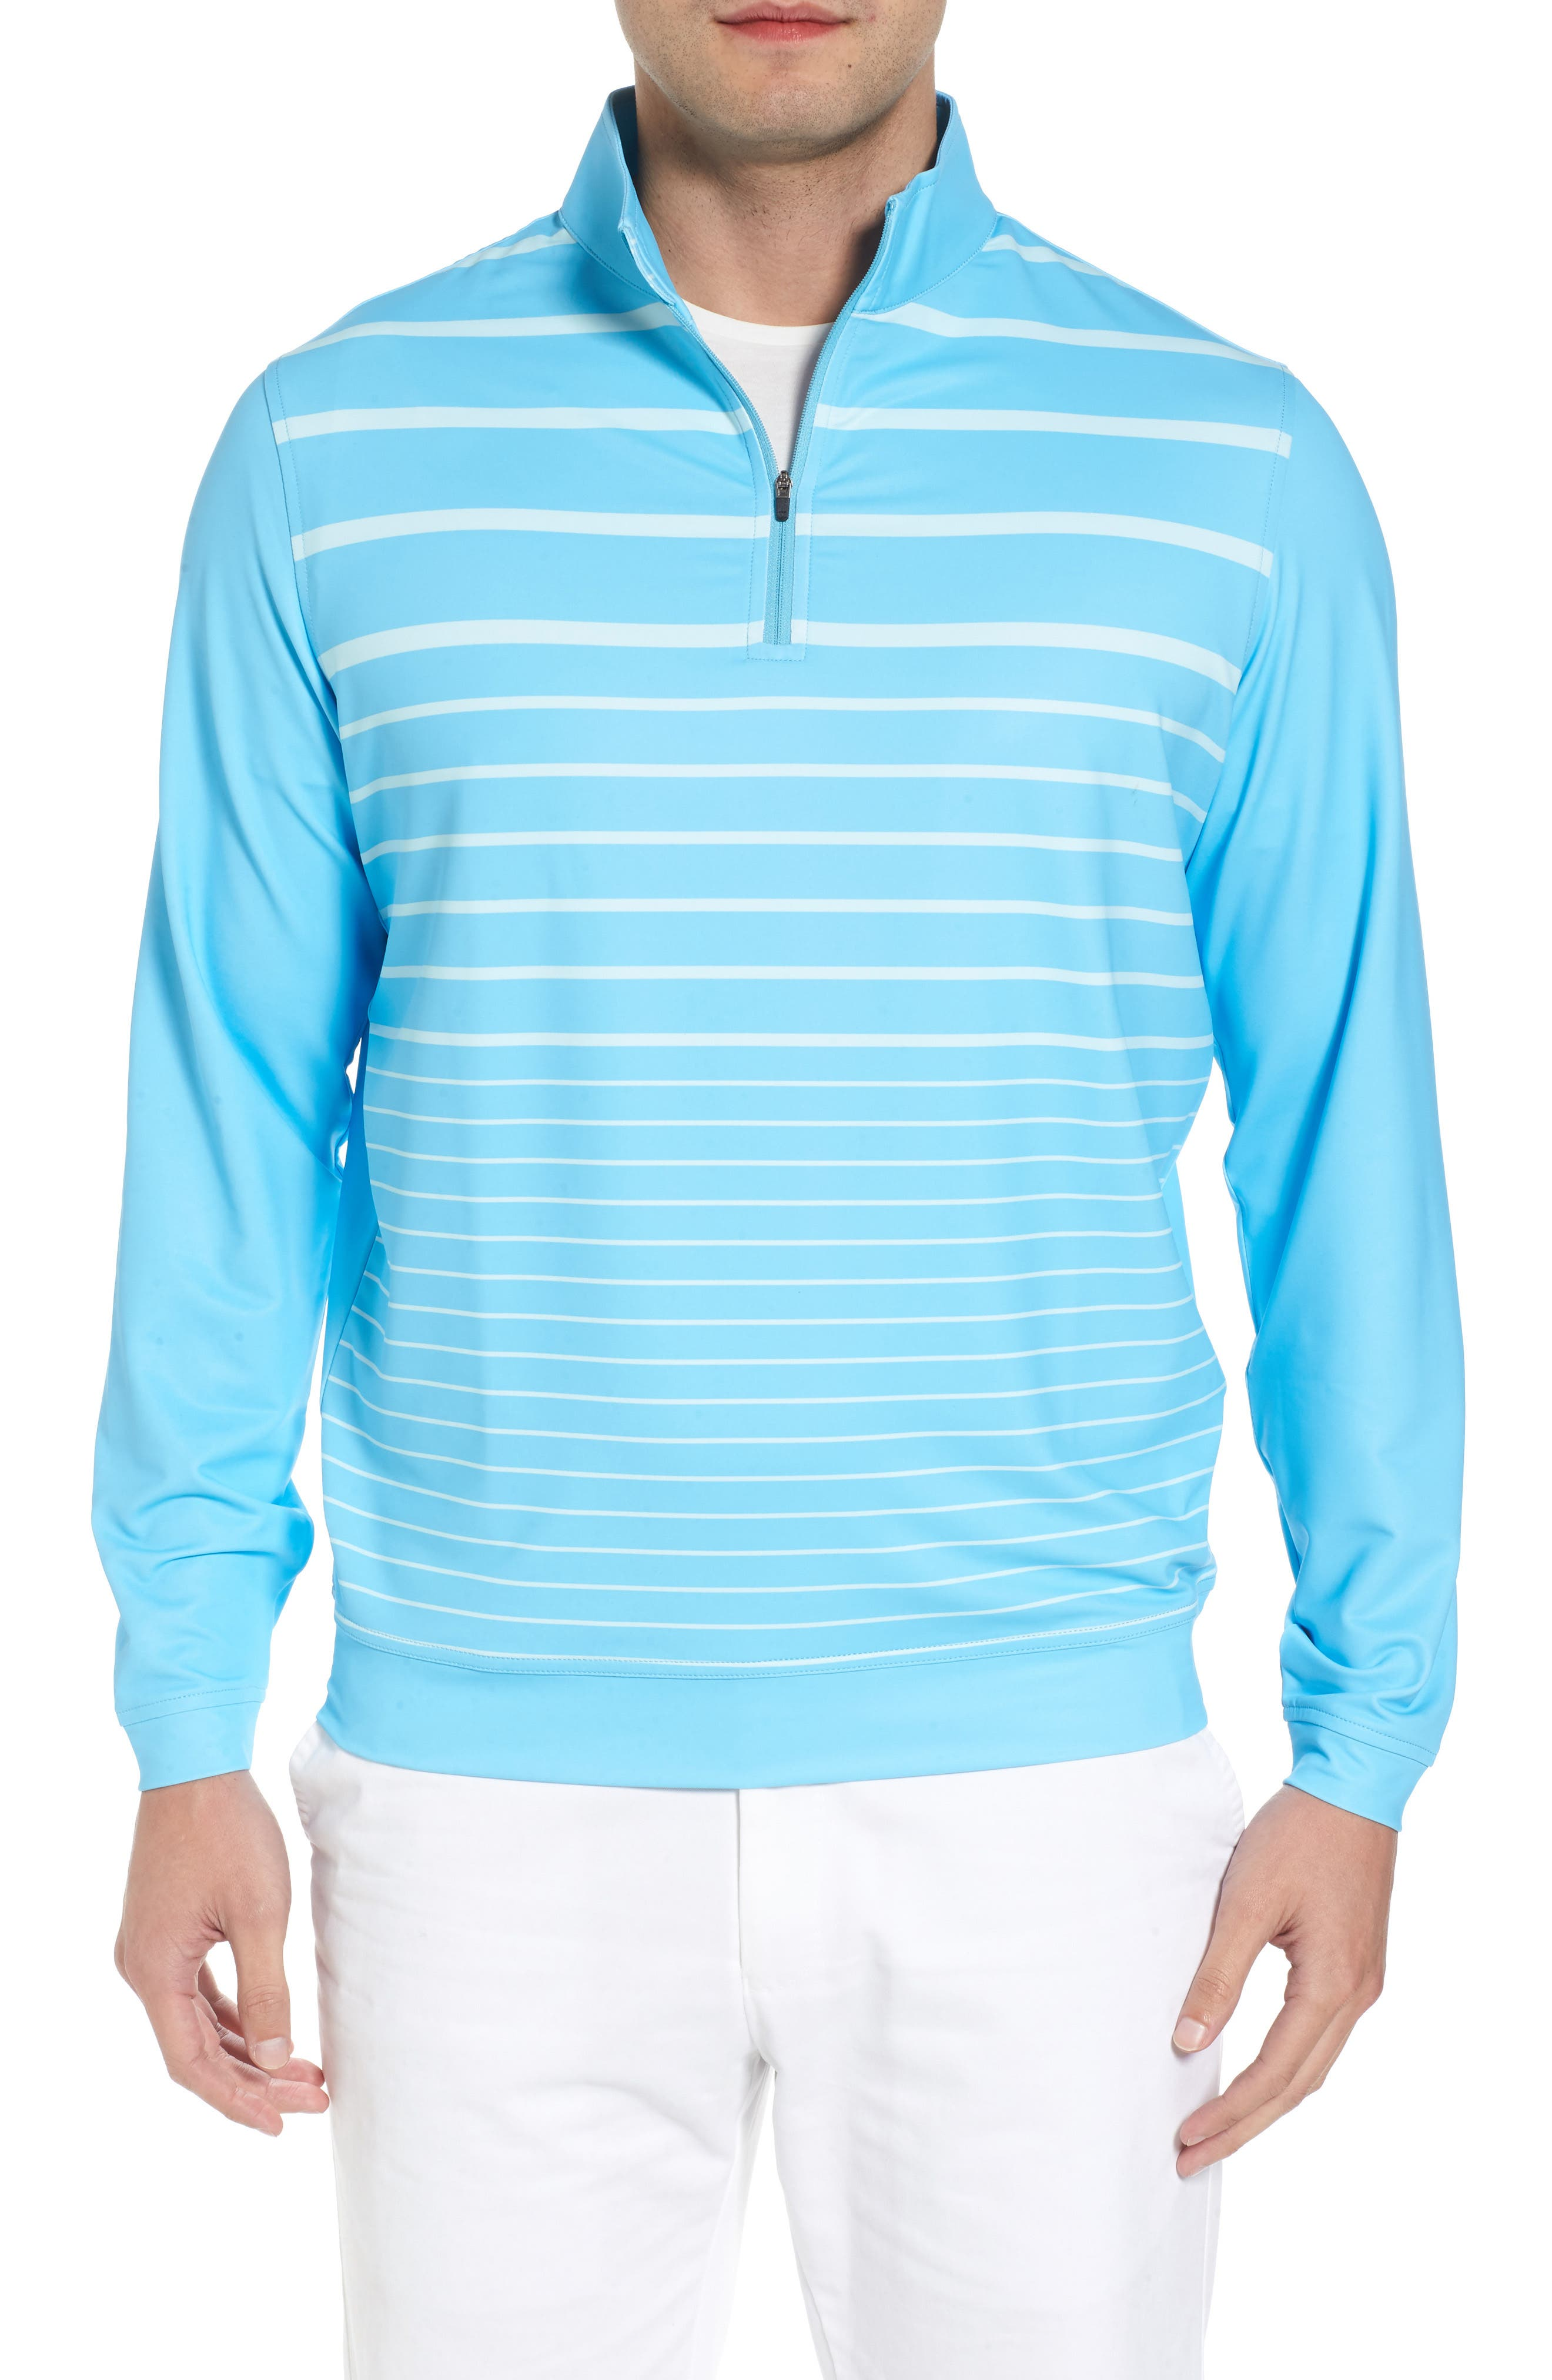 Peter Millar Perth Quarter Zip Performance Pullover